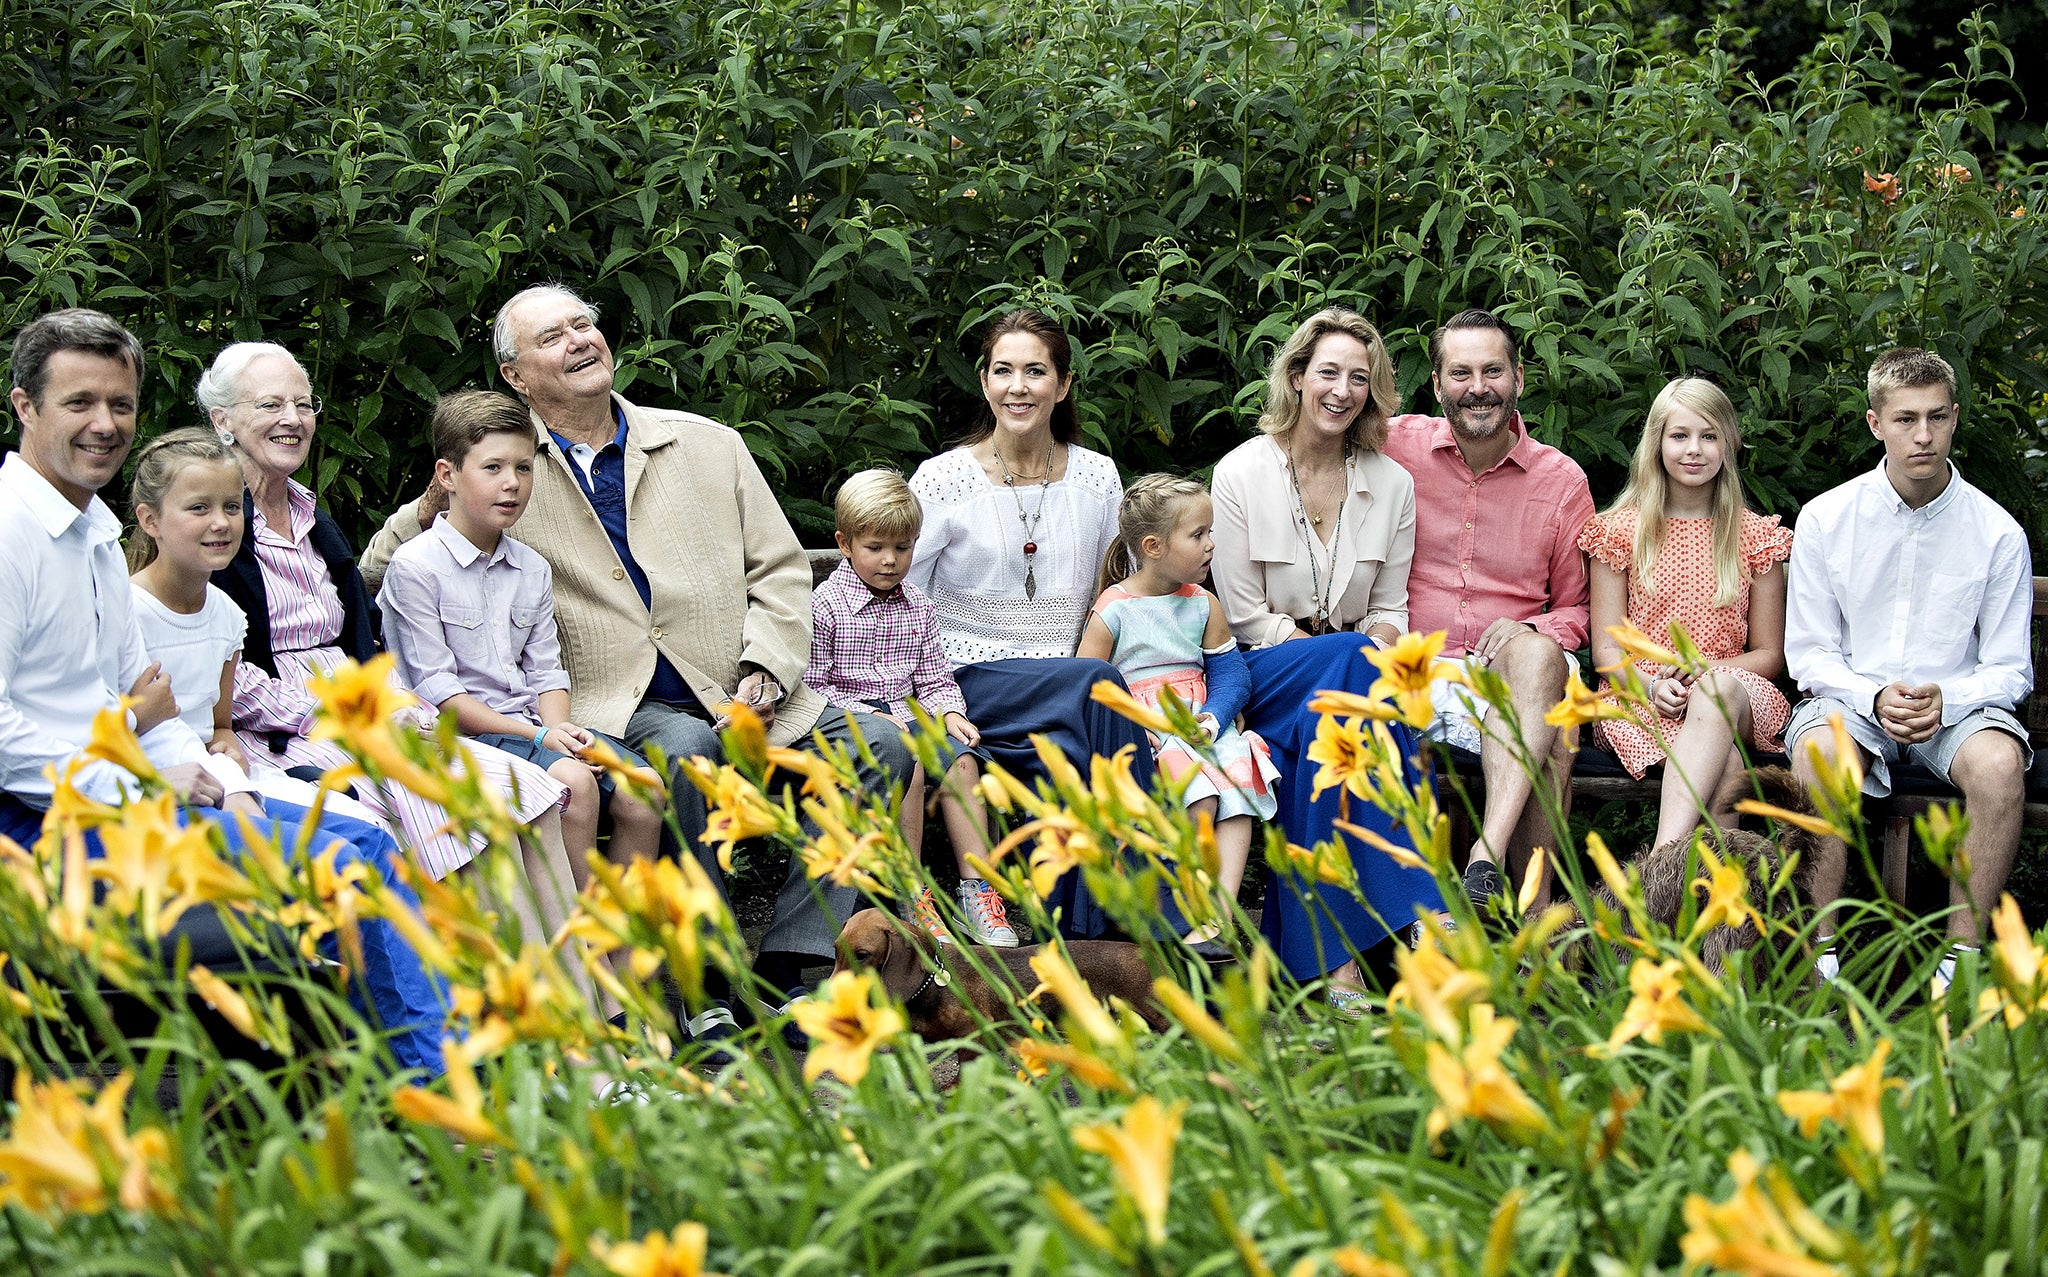 Danish Royal family - latest news, breaking stories and